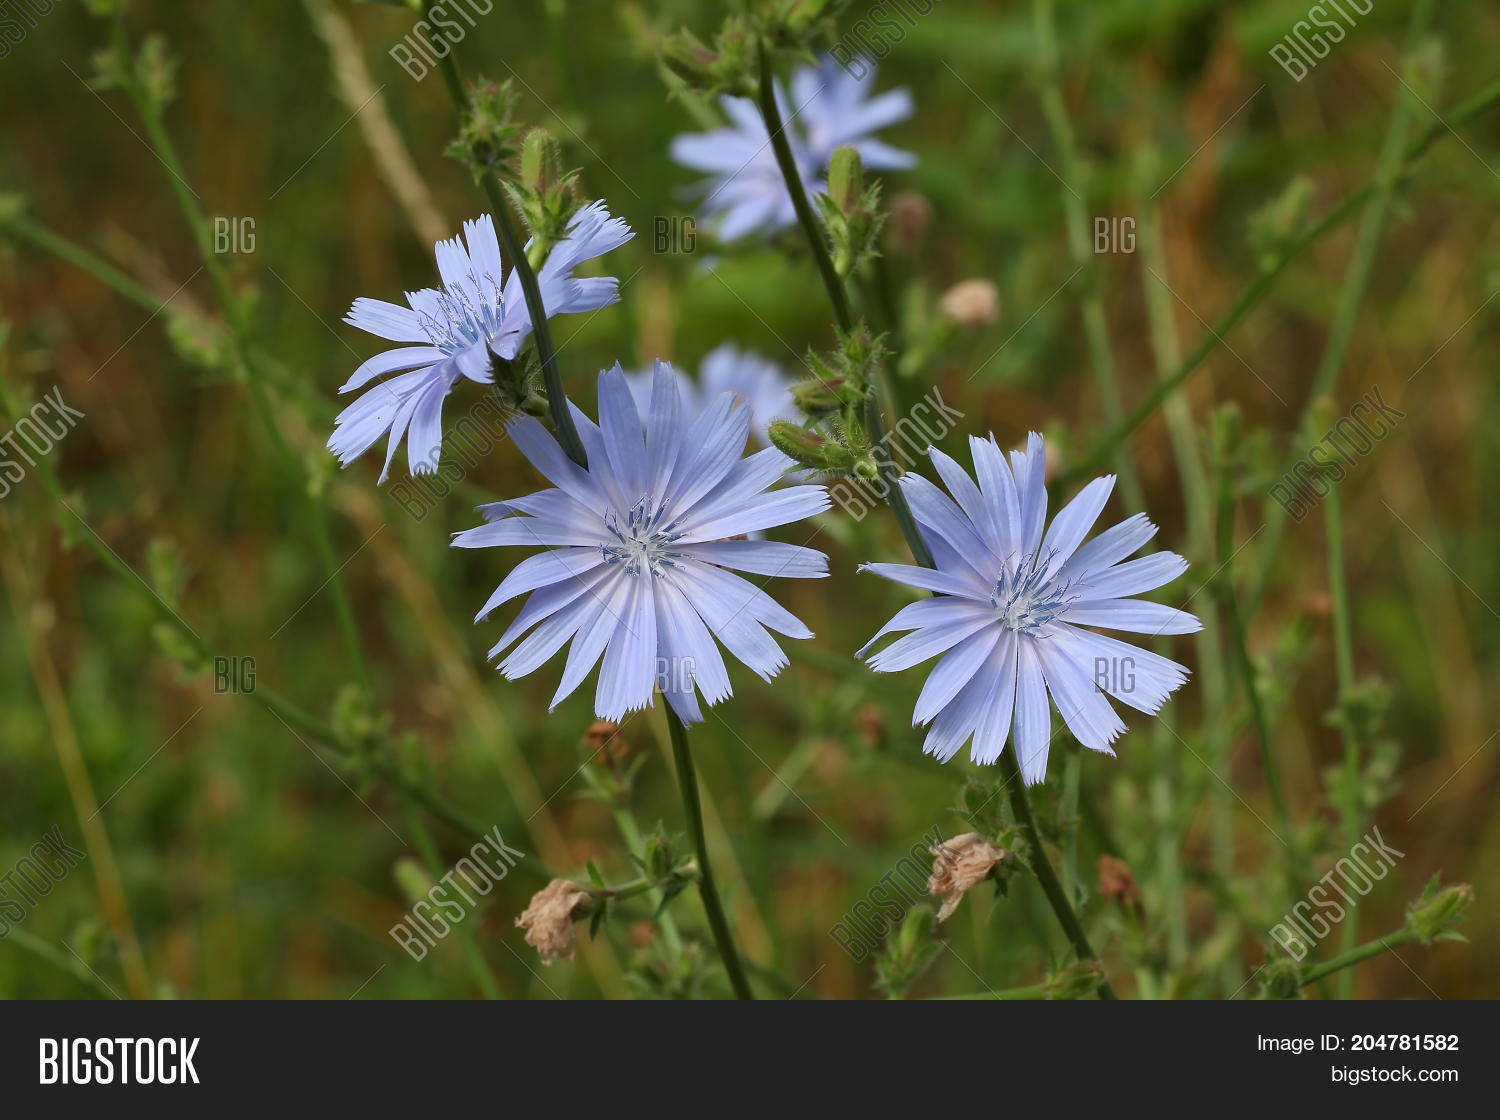 Chicory / blue flowers of chicory with latin name Cichorium on green nature background